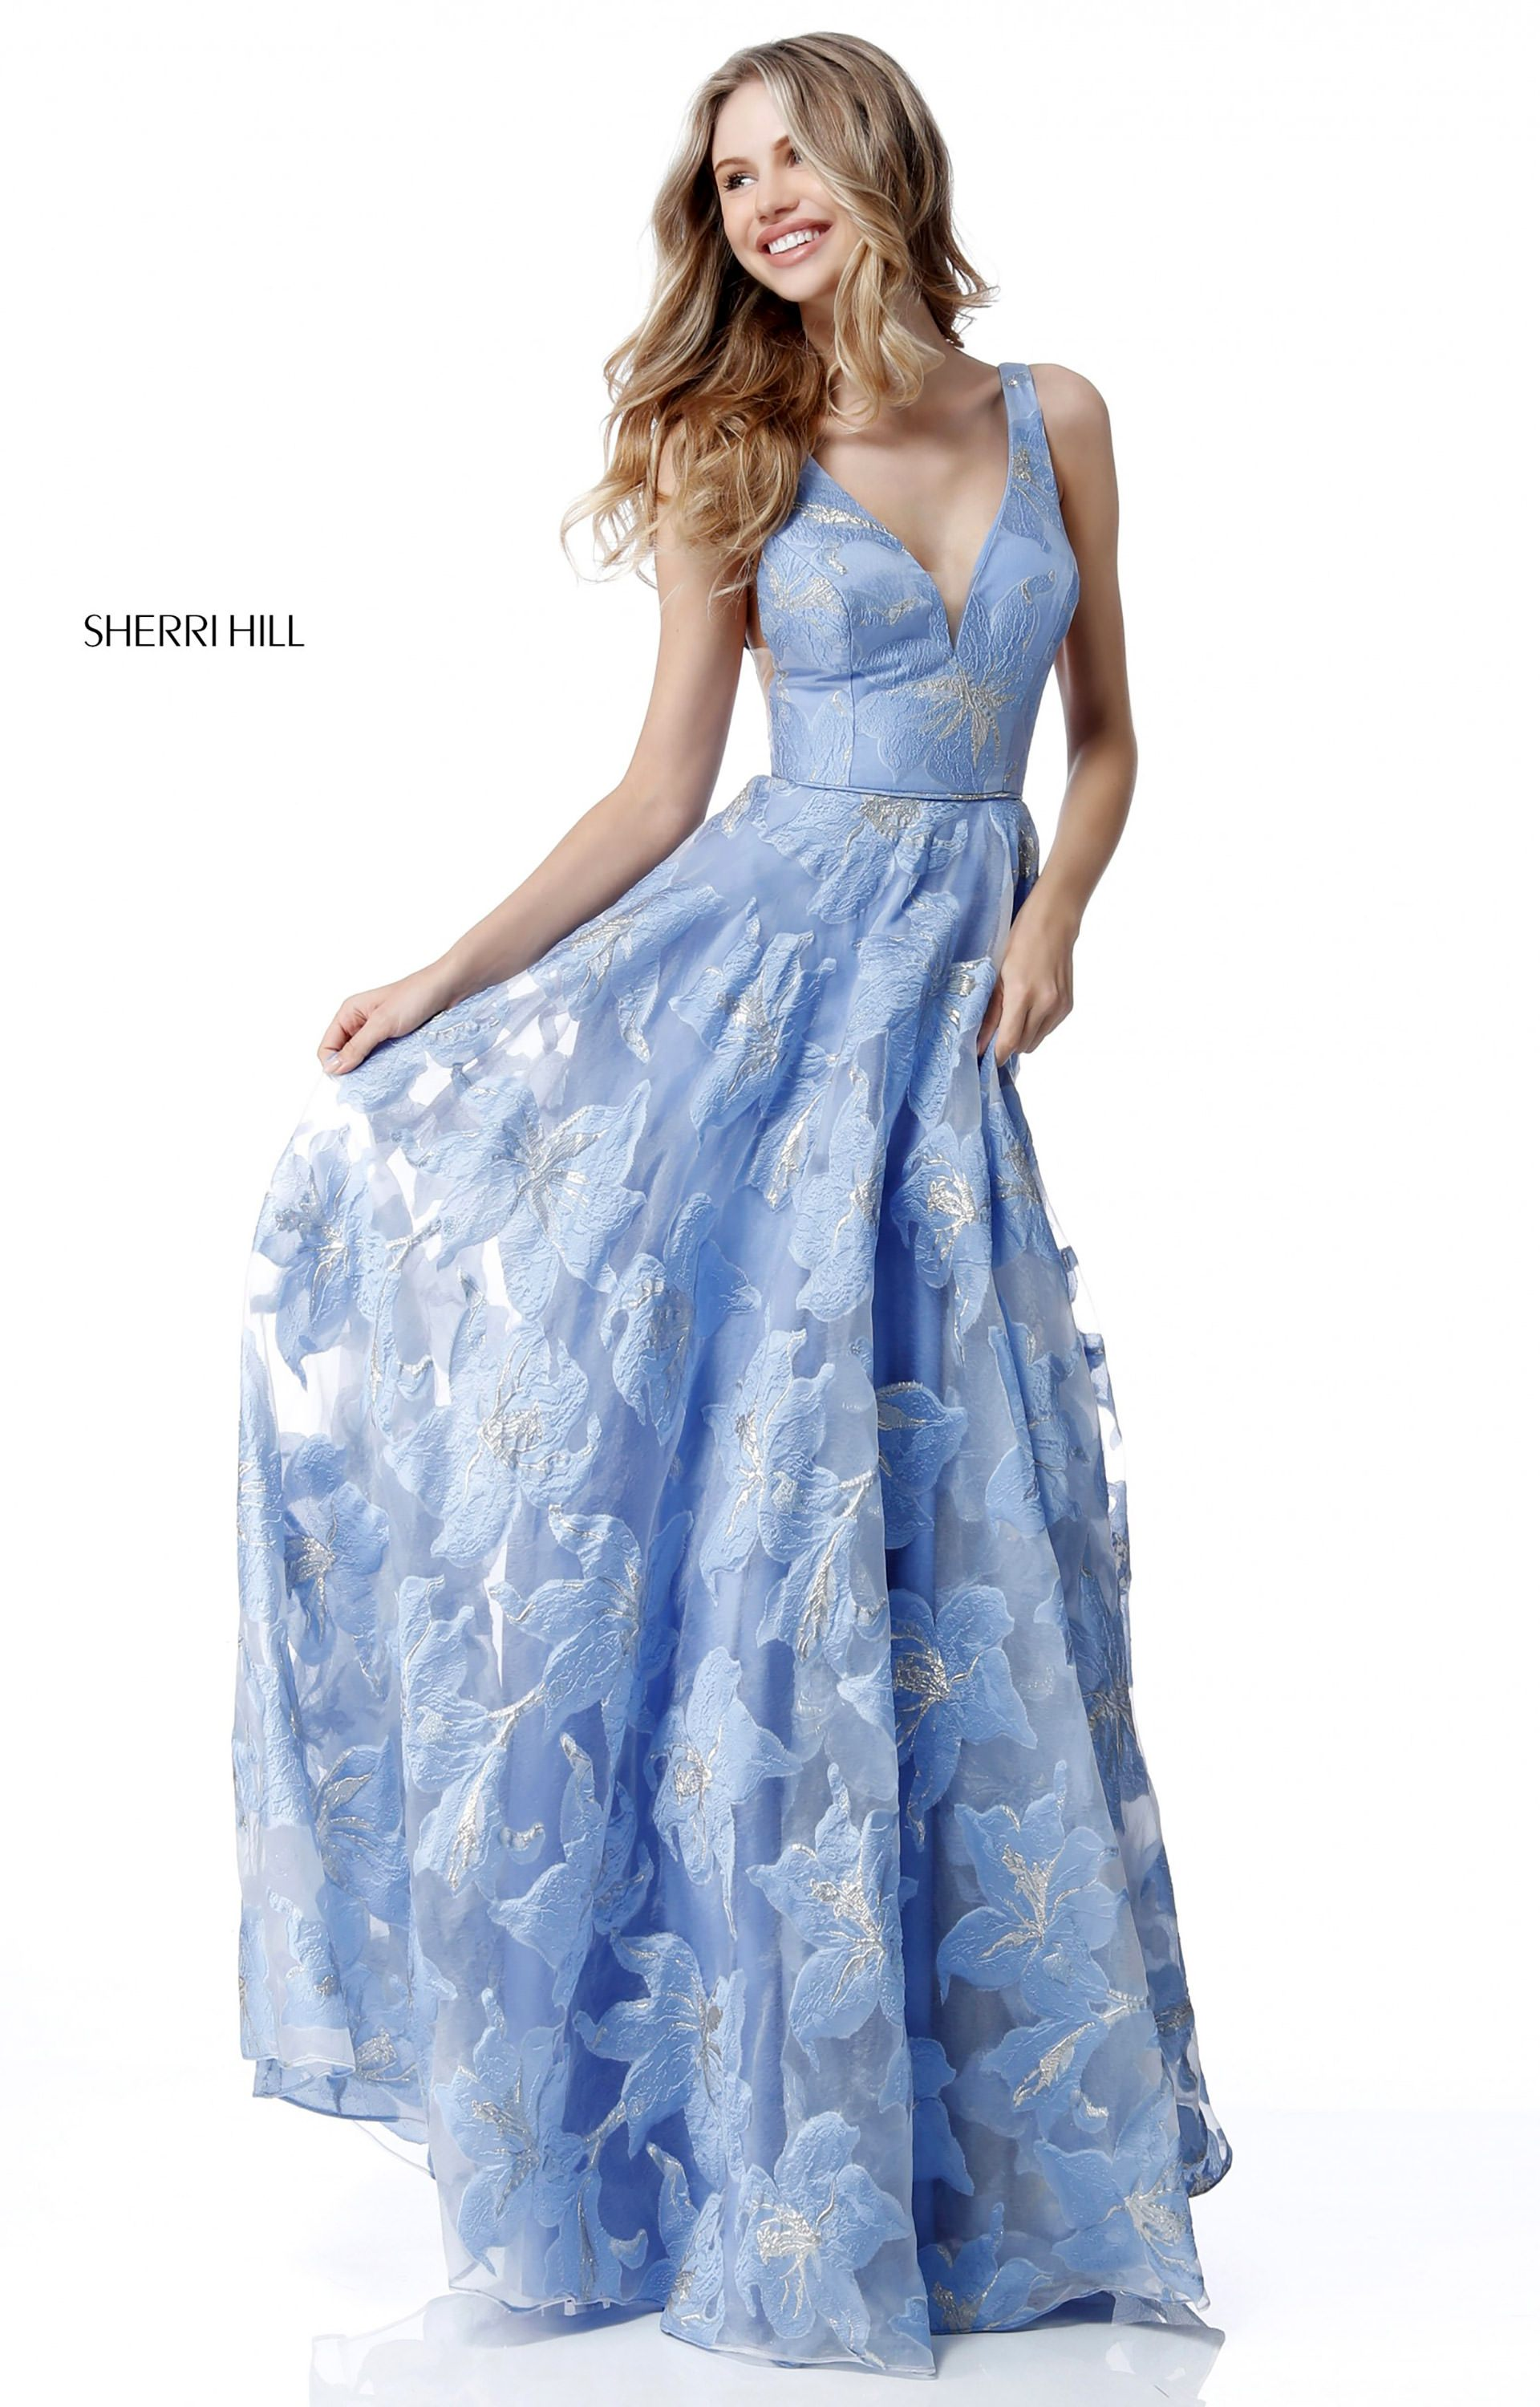 Sherri Hill 51628 - Long Organza A-Line V-Neck Prom Dress